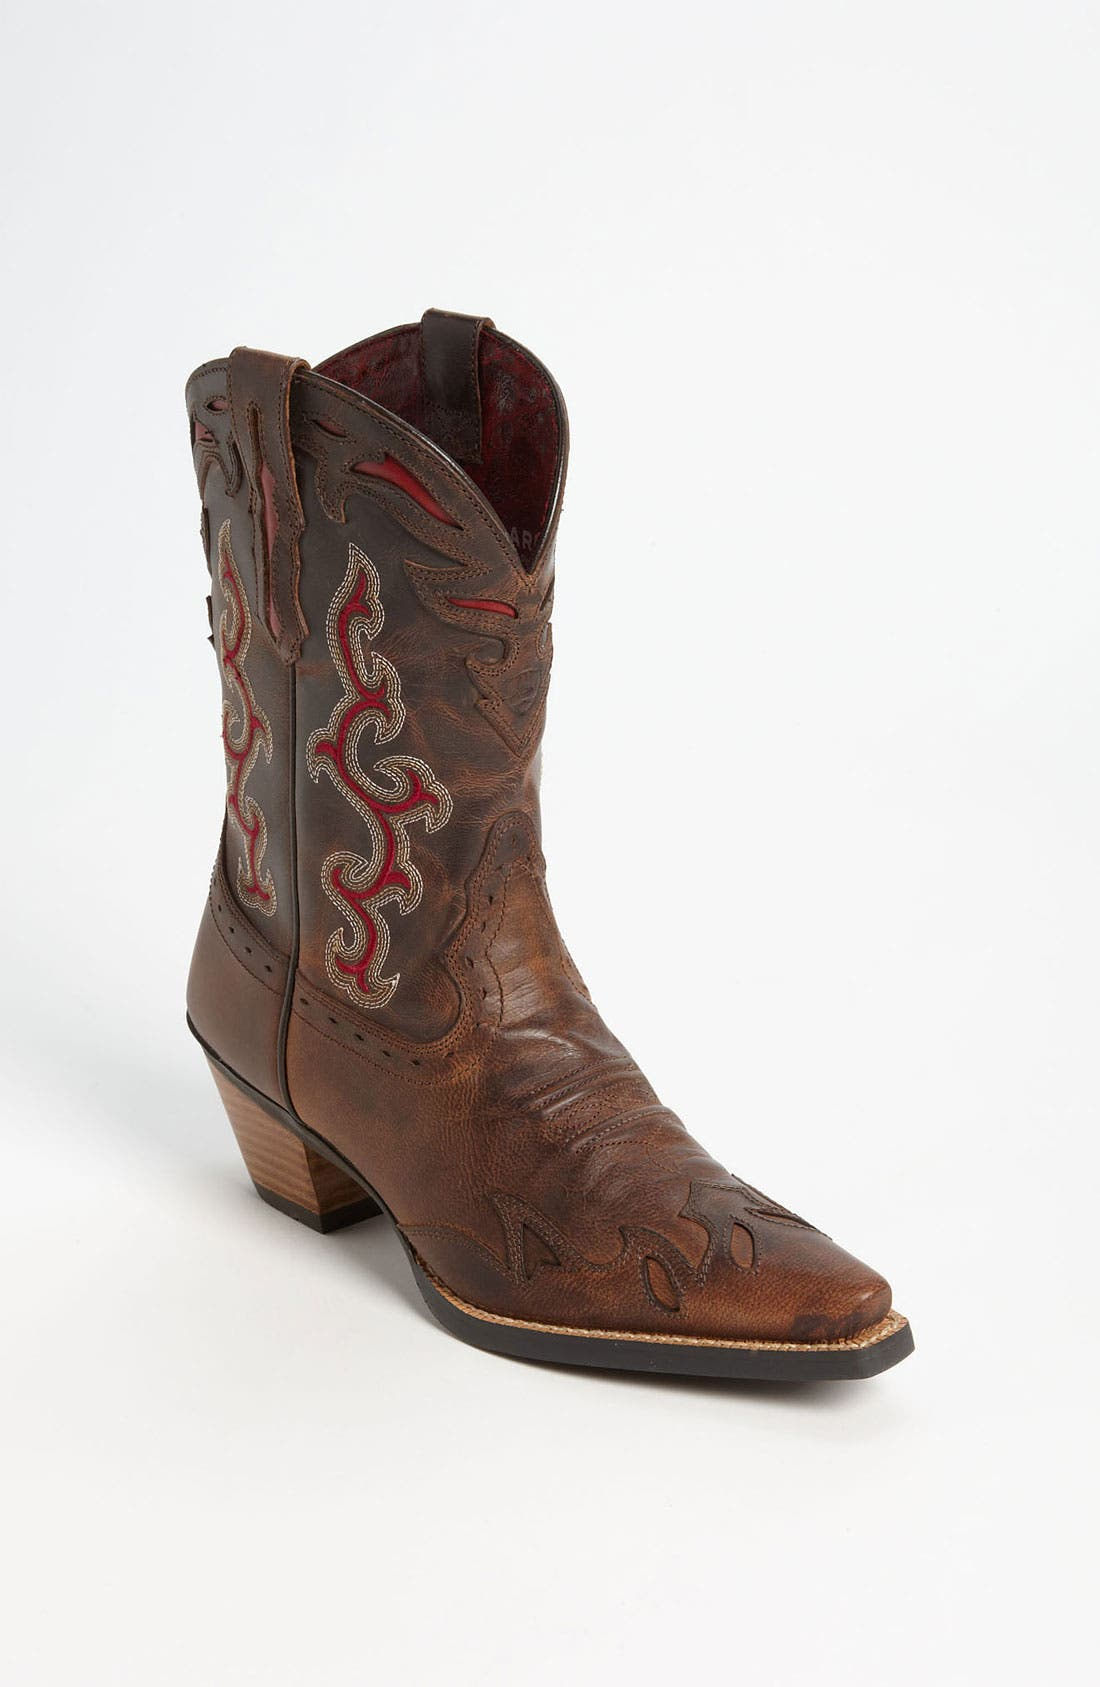 Alternate Image 1 Selected - Ariat 'Wichita' Boot (Online Only)